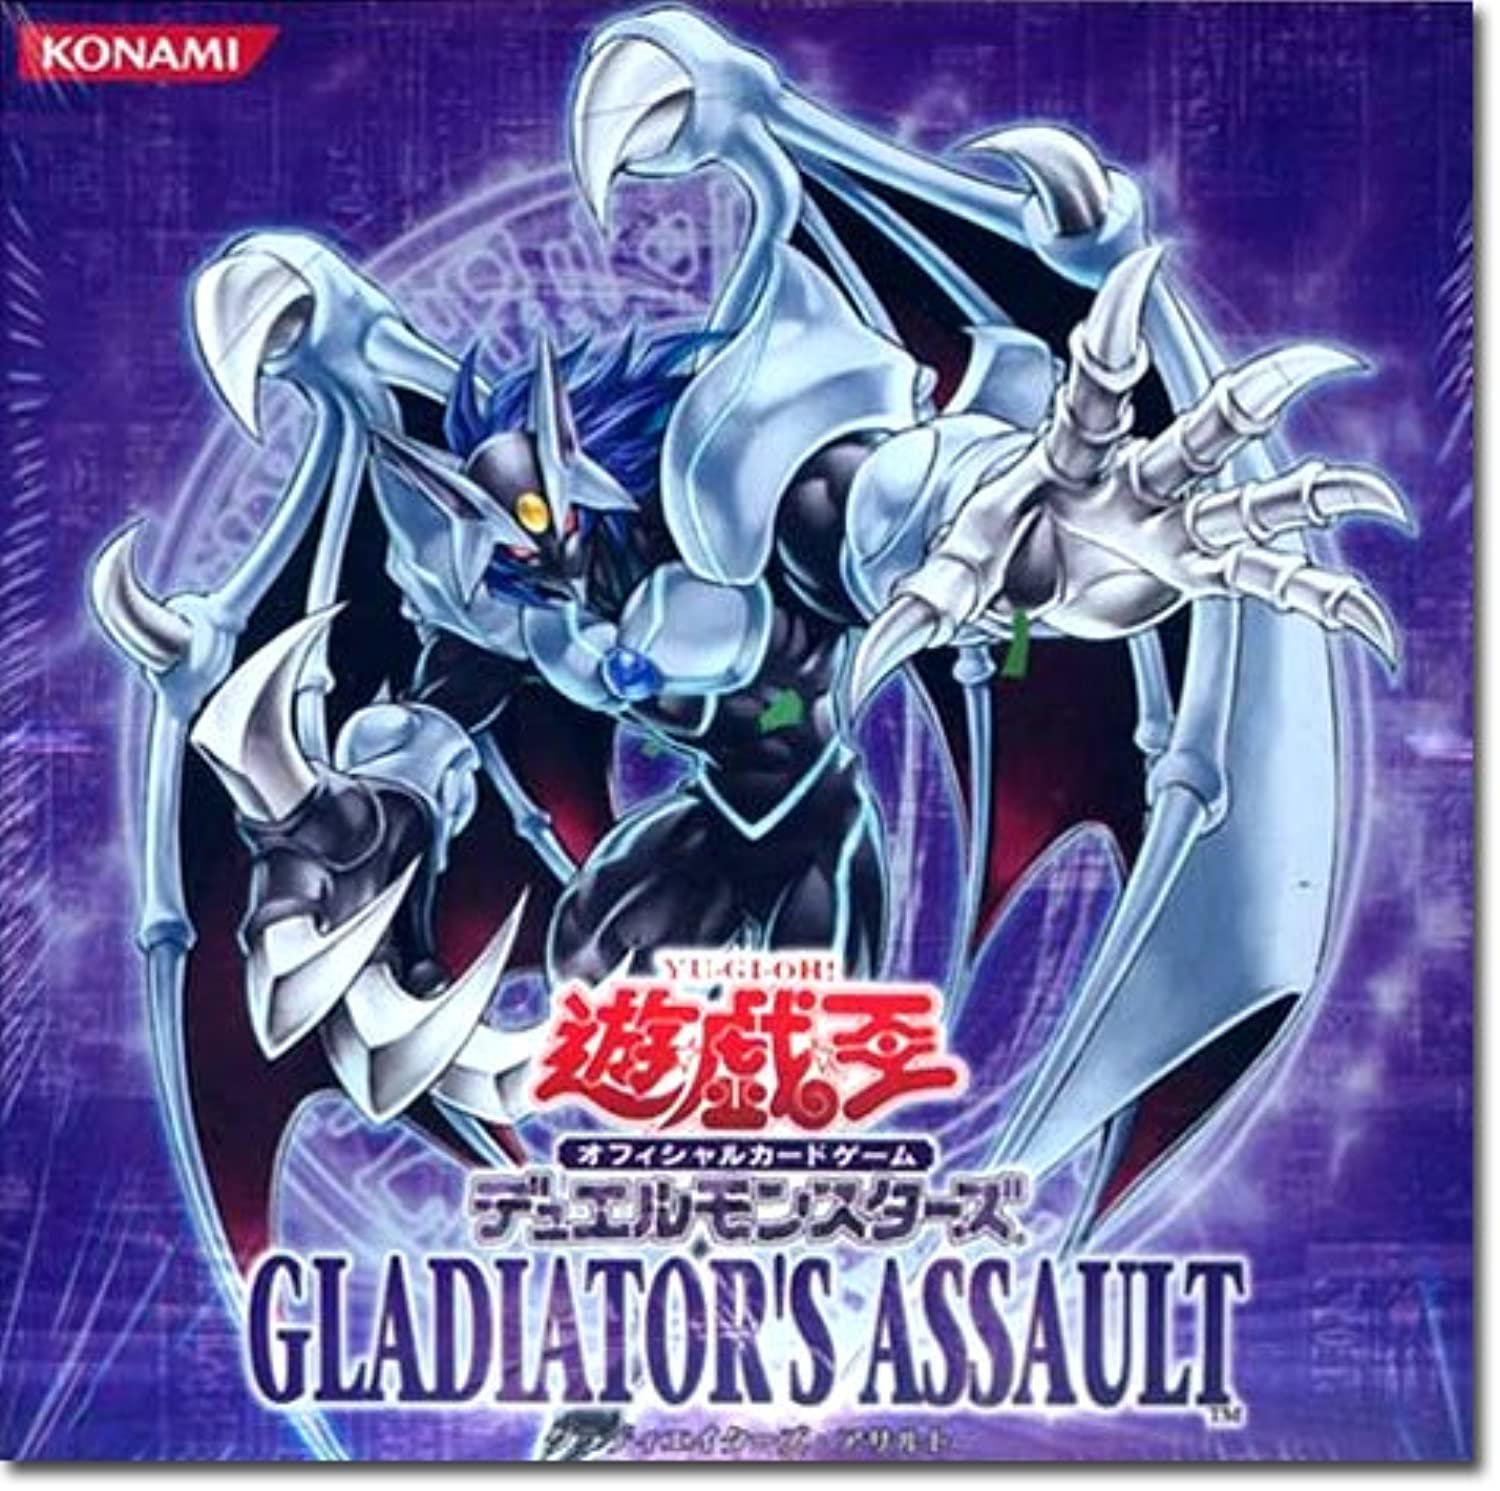 barato y de moda Yugioh GX Japanese Gladiators Assault Booster Pack (japan import) import) import)  moda clasica